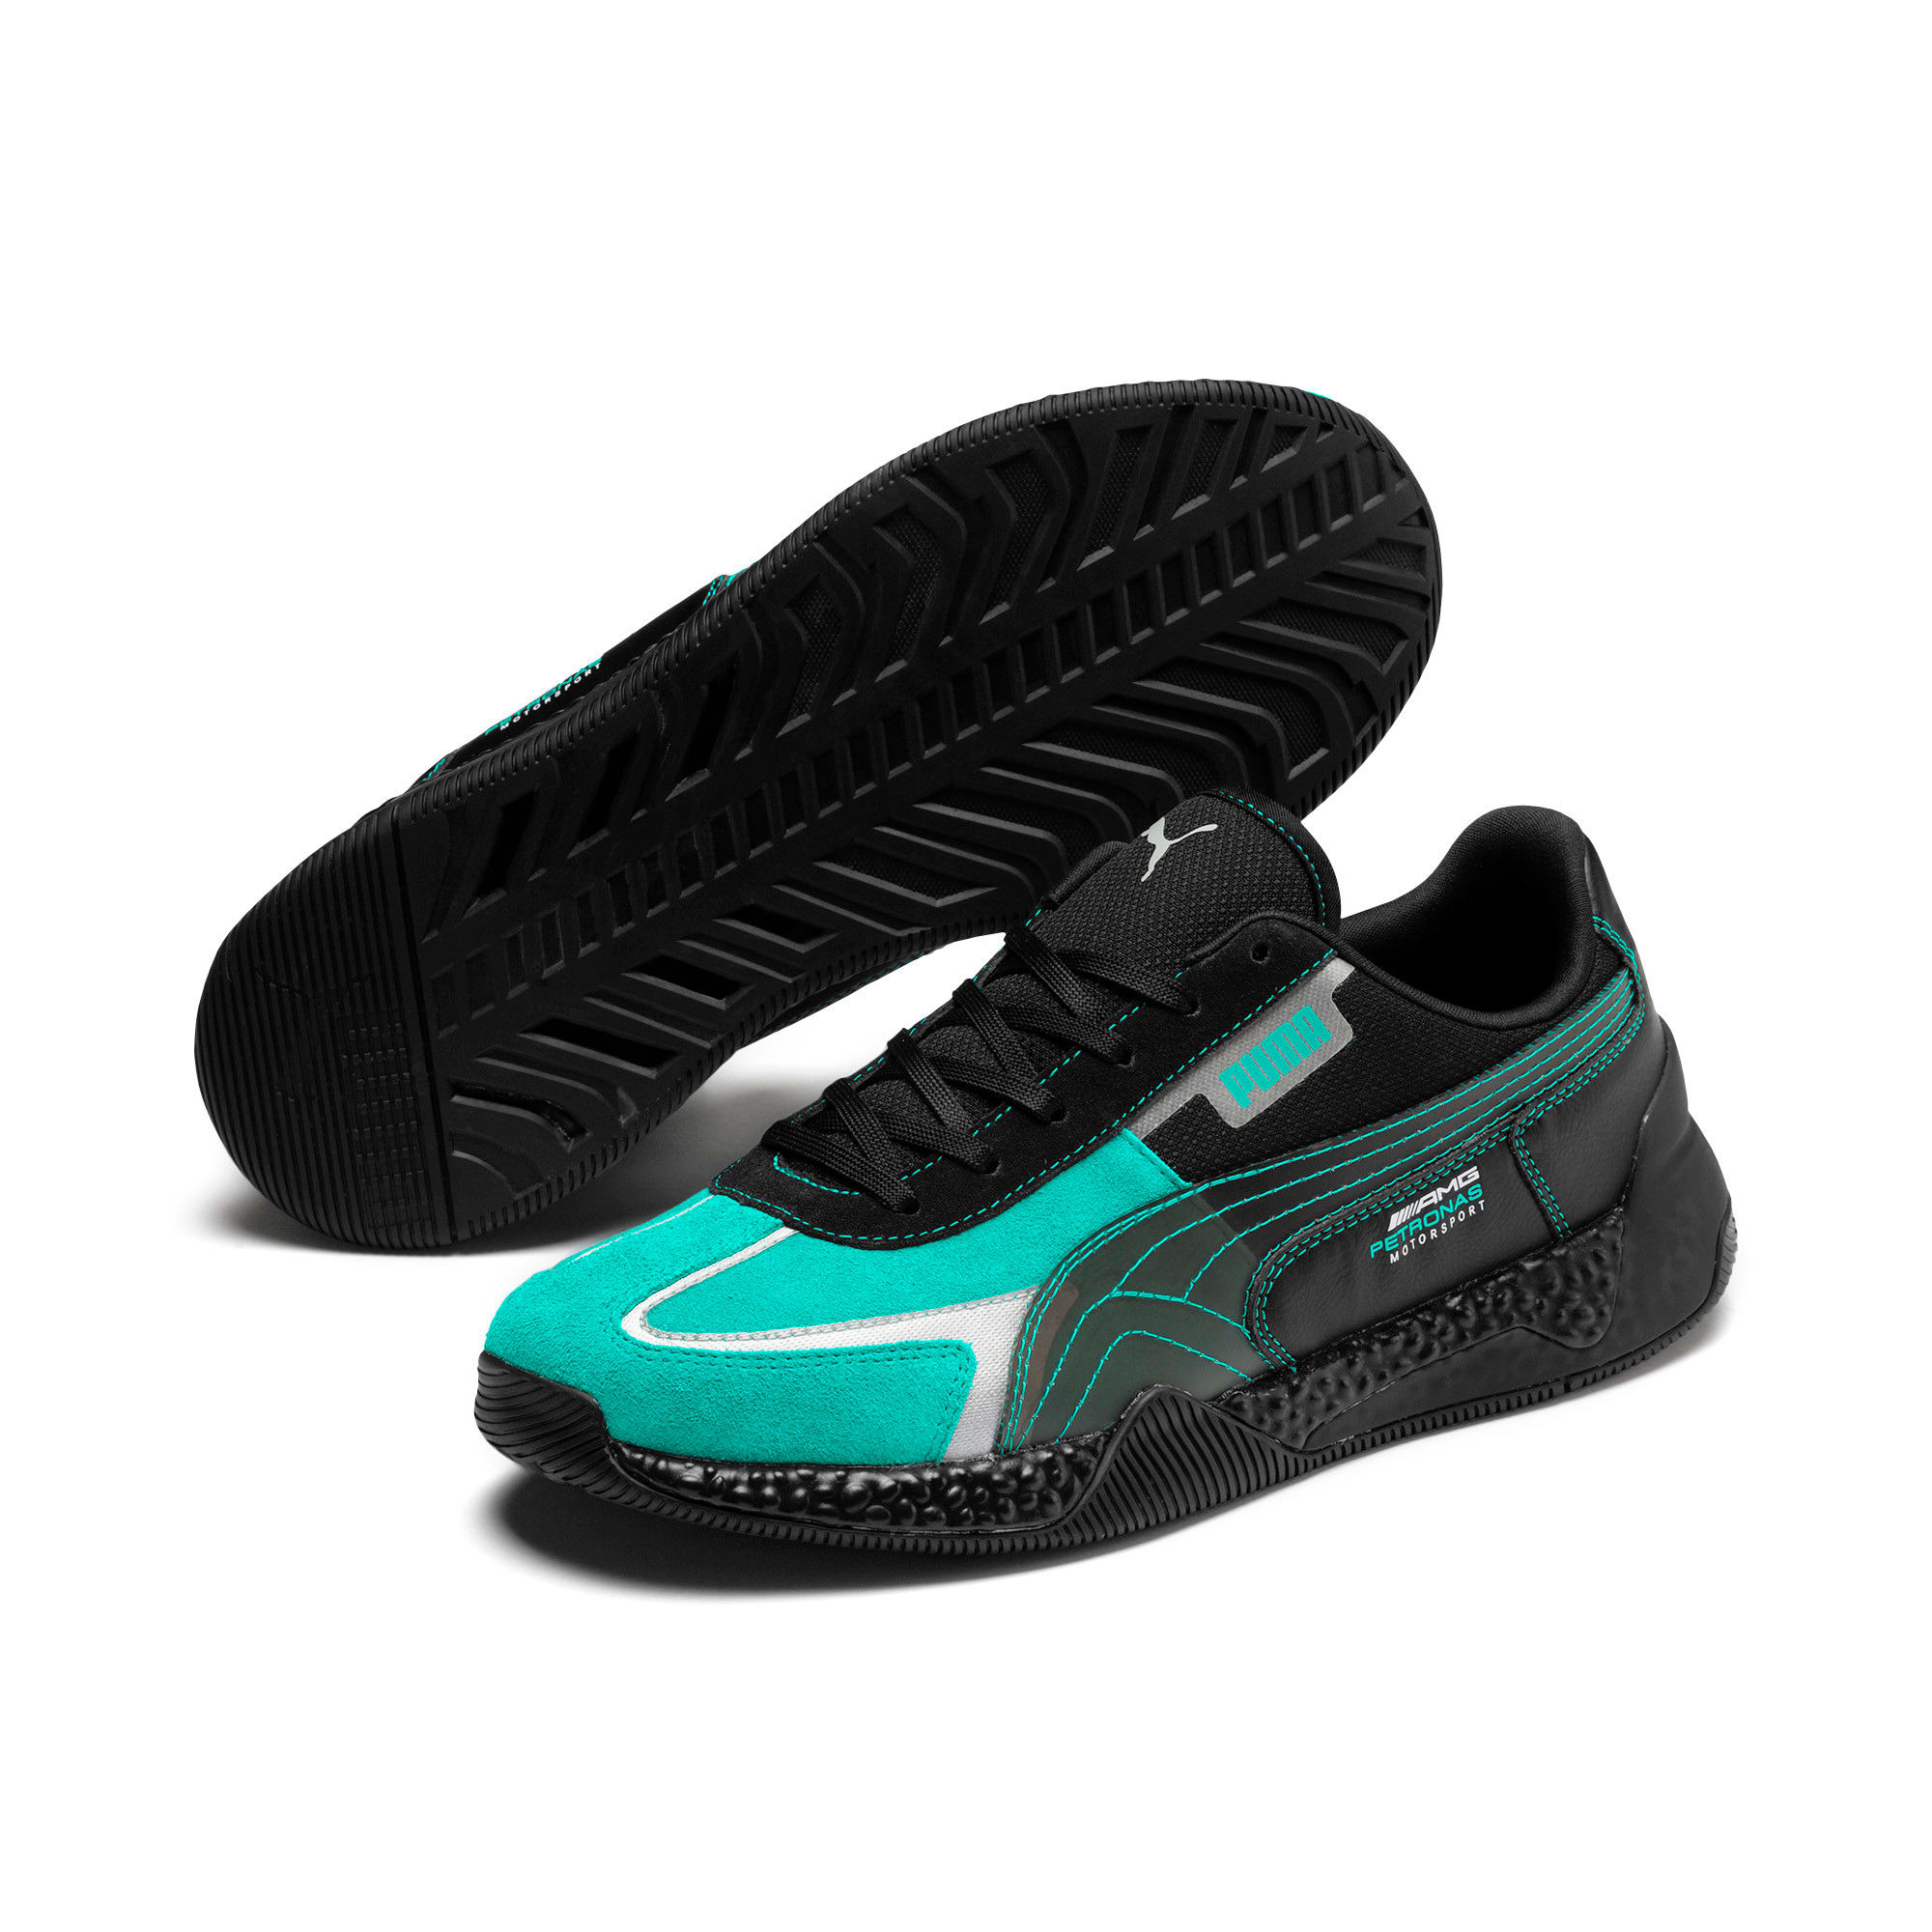 Thumbnail 3 of Mercedes AMG Petronas Speed HYBRID Running Shoes, Puma Black-Spectra Green, medium